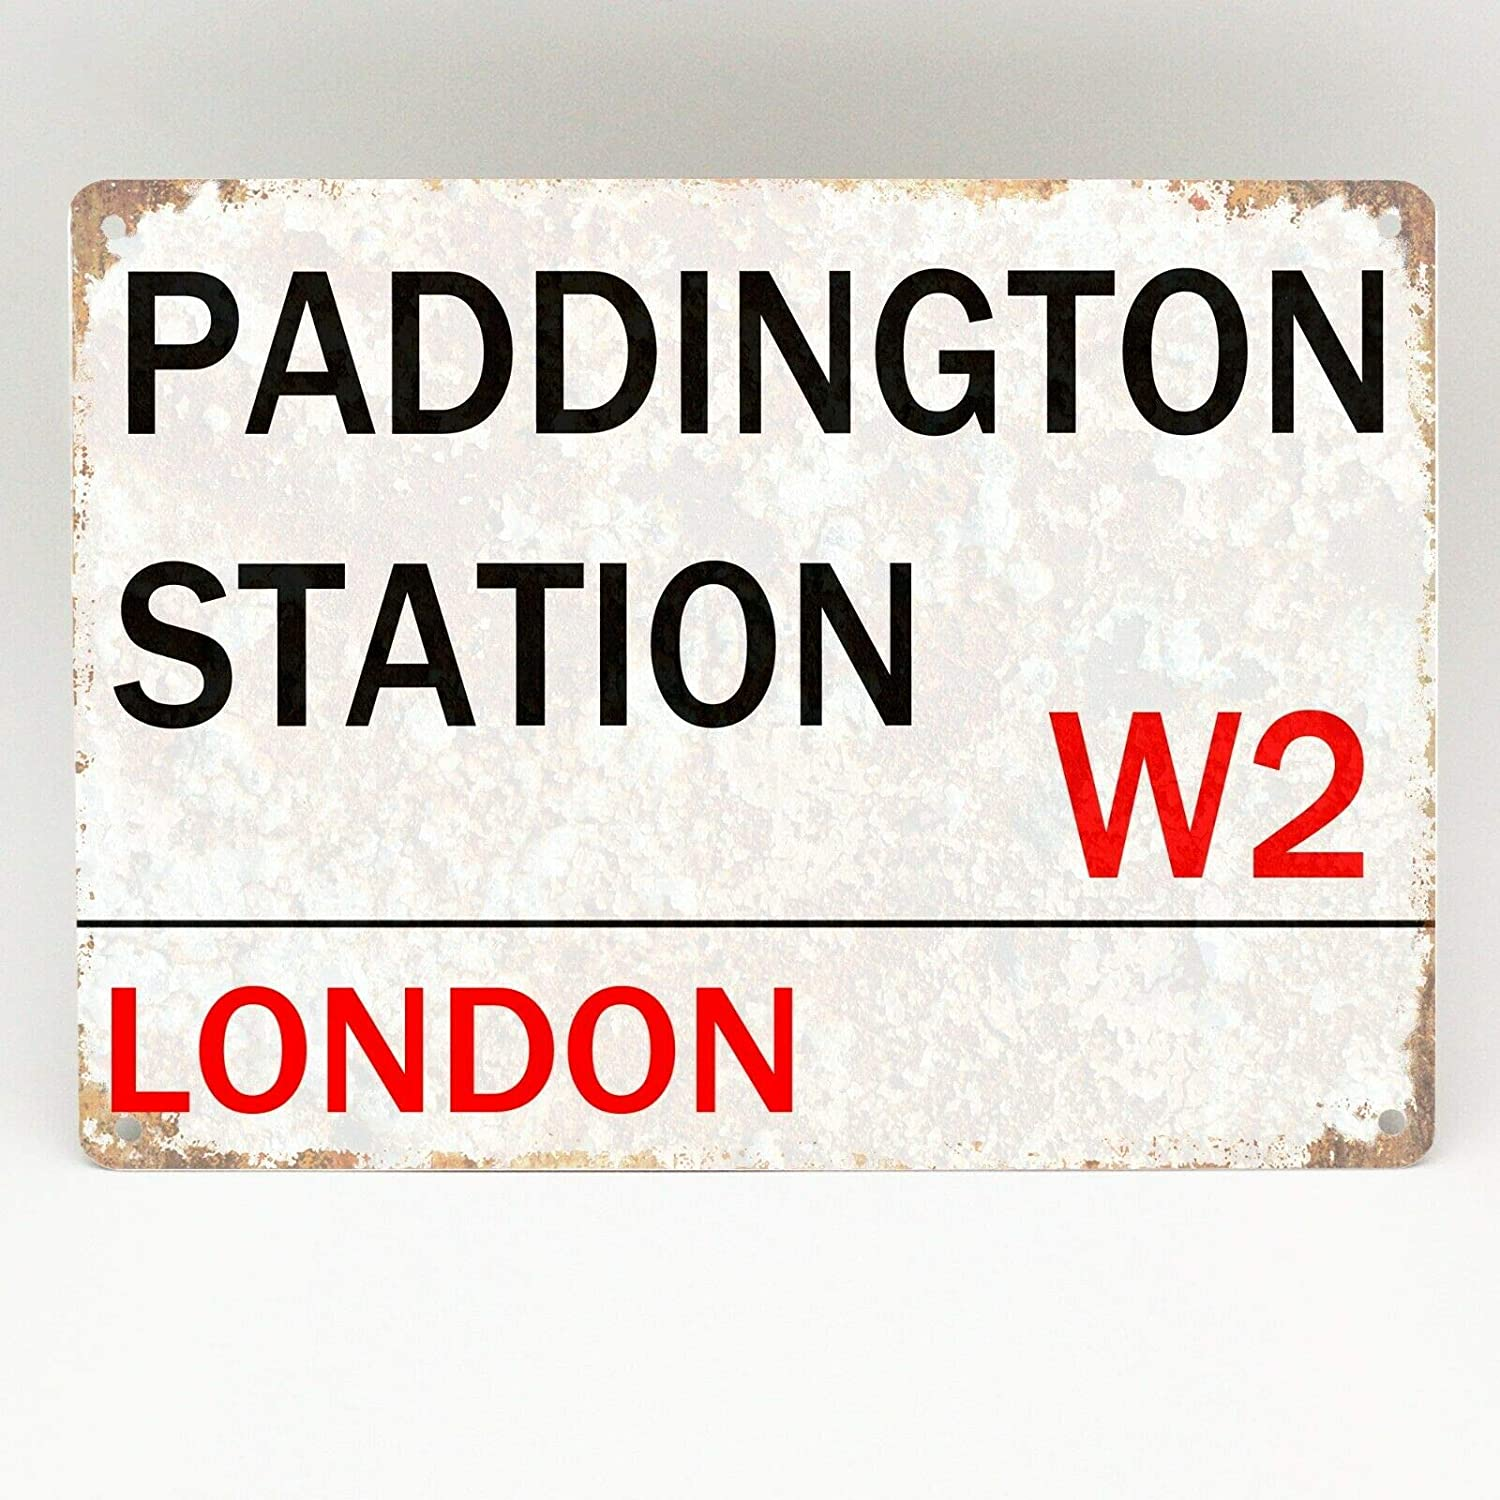 Tnnd Paddington Station Metal Sign London Street Retro Wall Plaque Vintage Metal Plate Plaque Aluminum Metal Sign 8x12 Inches Home Kitchen